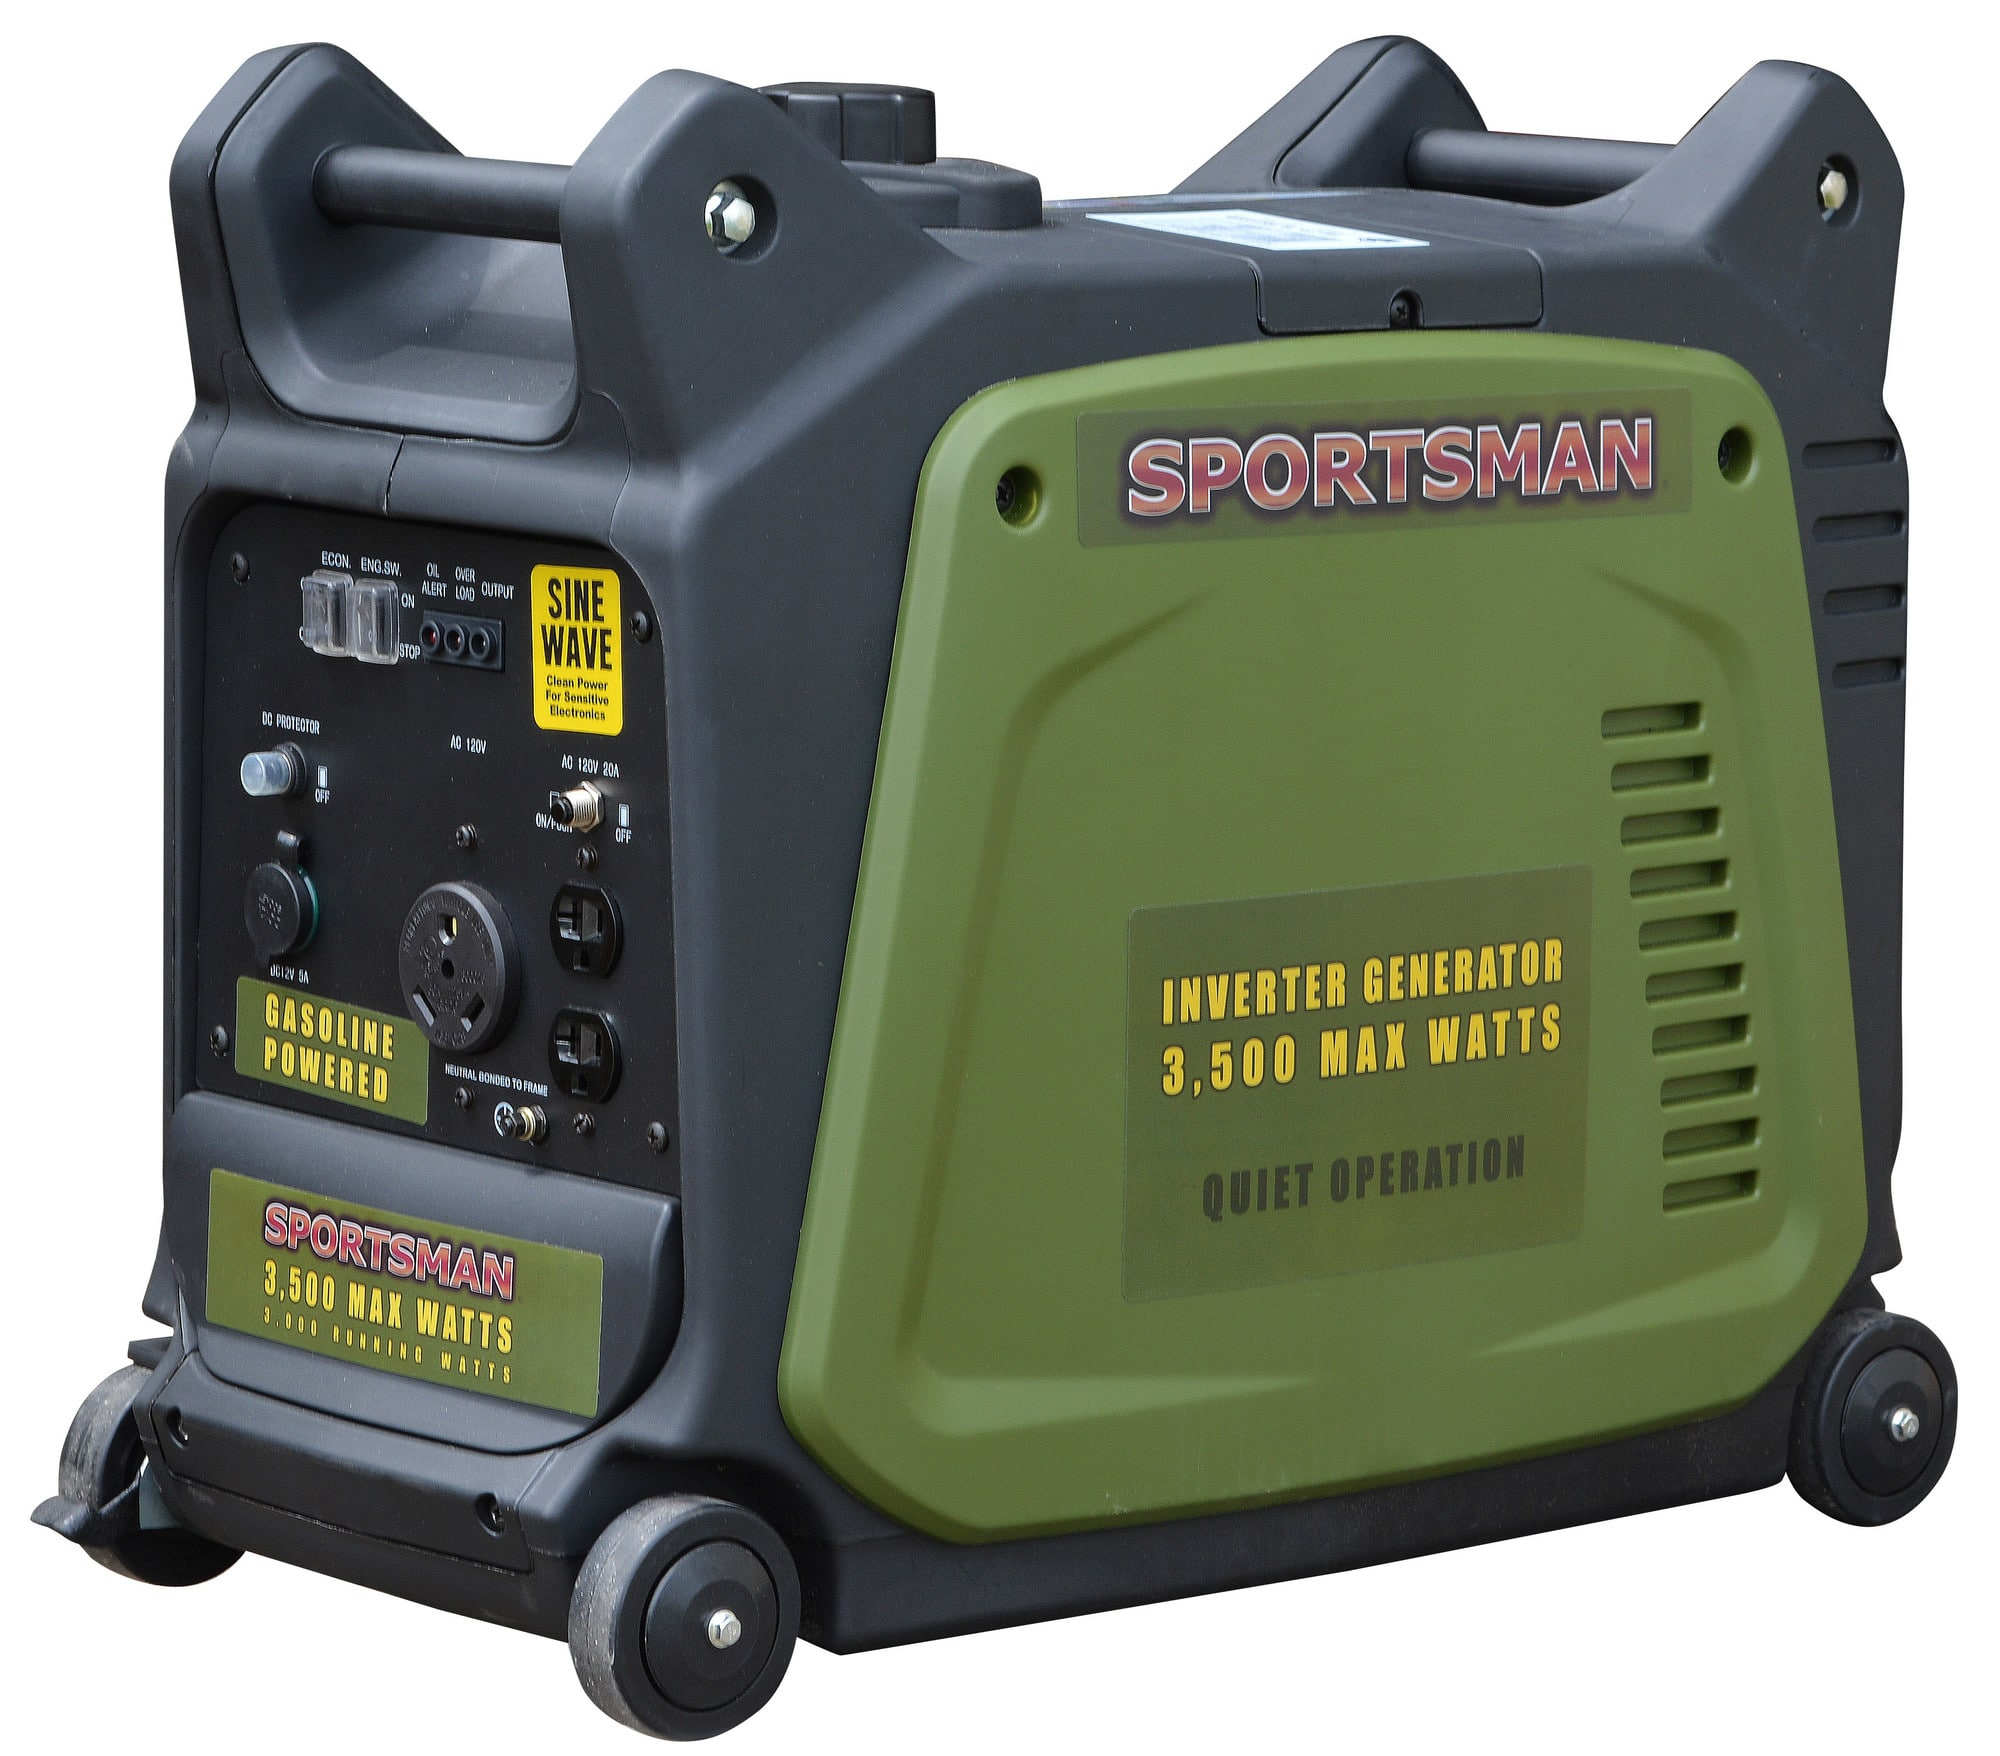 worksheet Generator Wattage Worksheet 3500 watt sportsman series inverter generator slickdeals net deal image